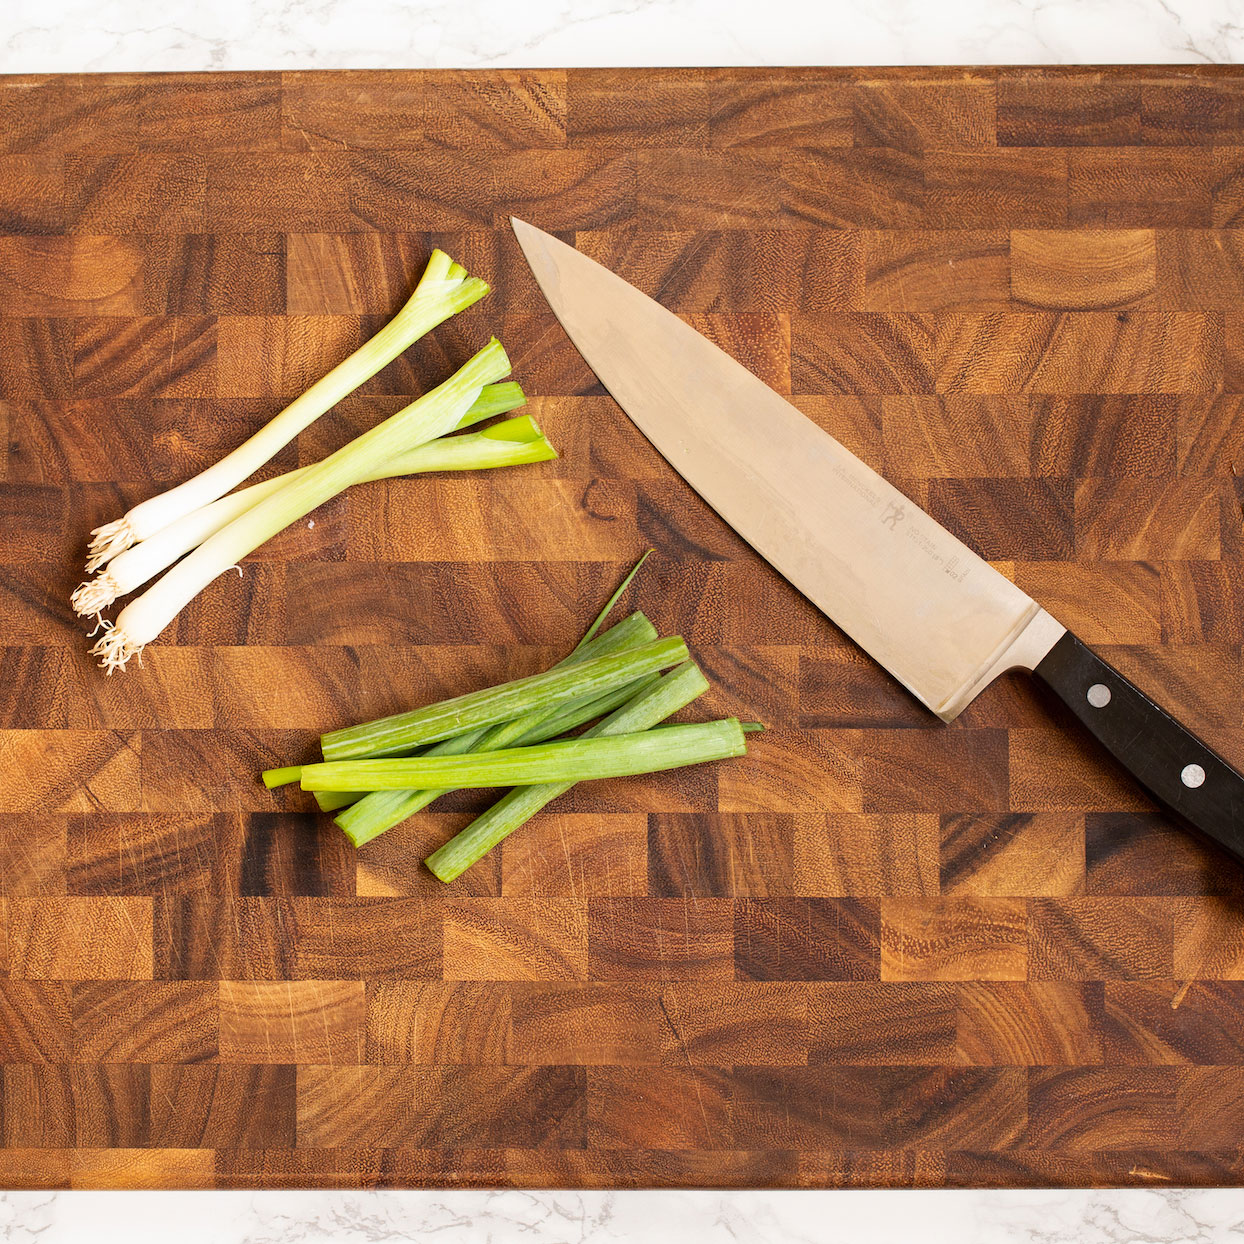 Sliced green onions on a wooden cutting board with knife